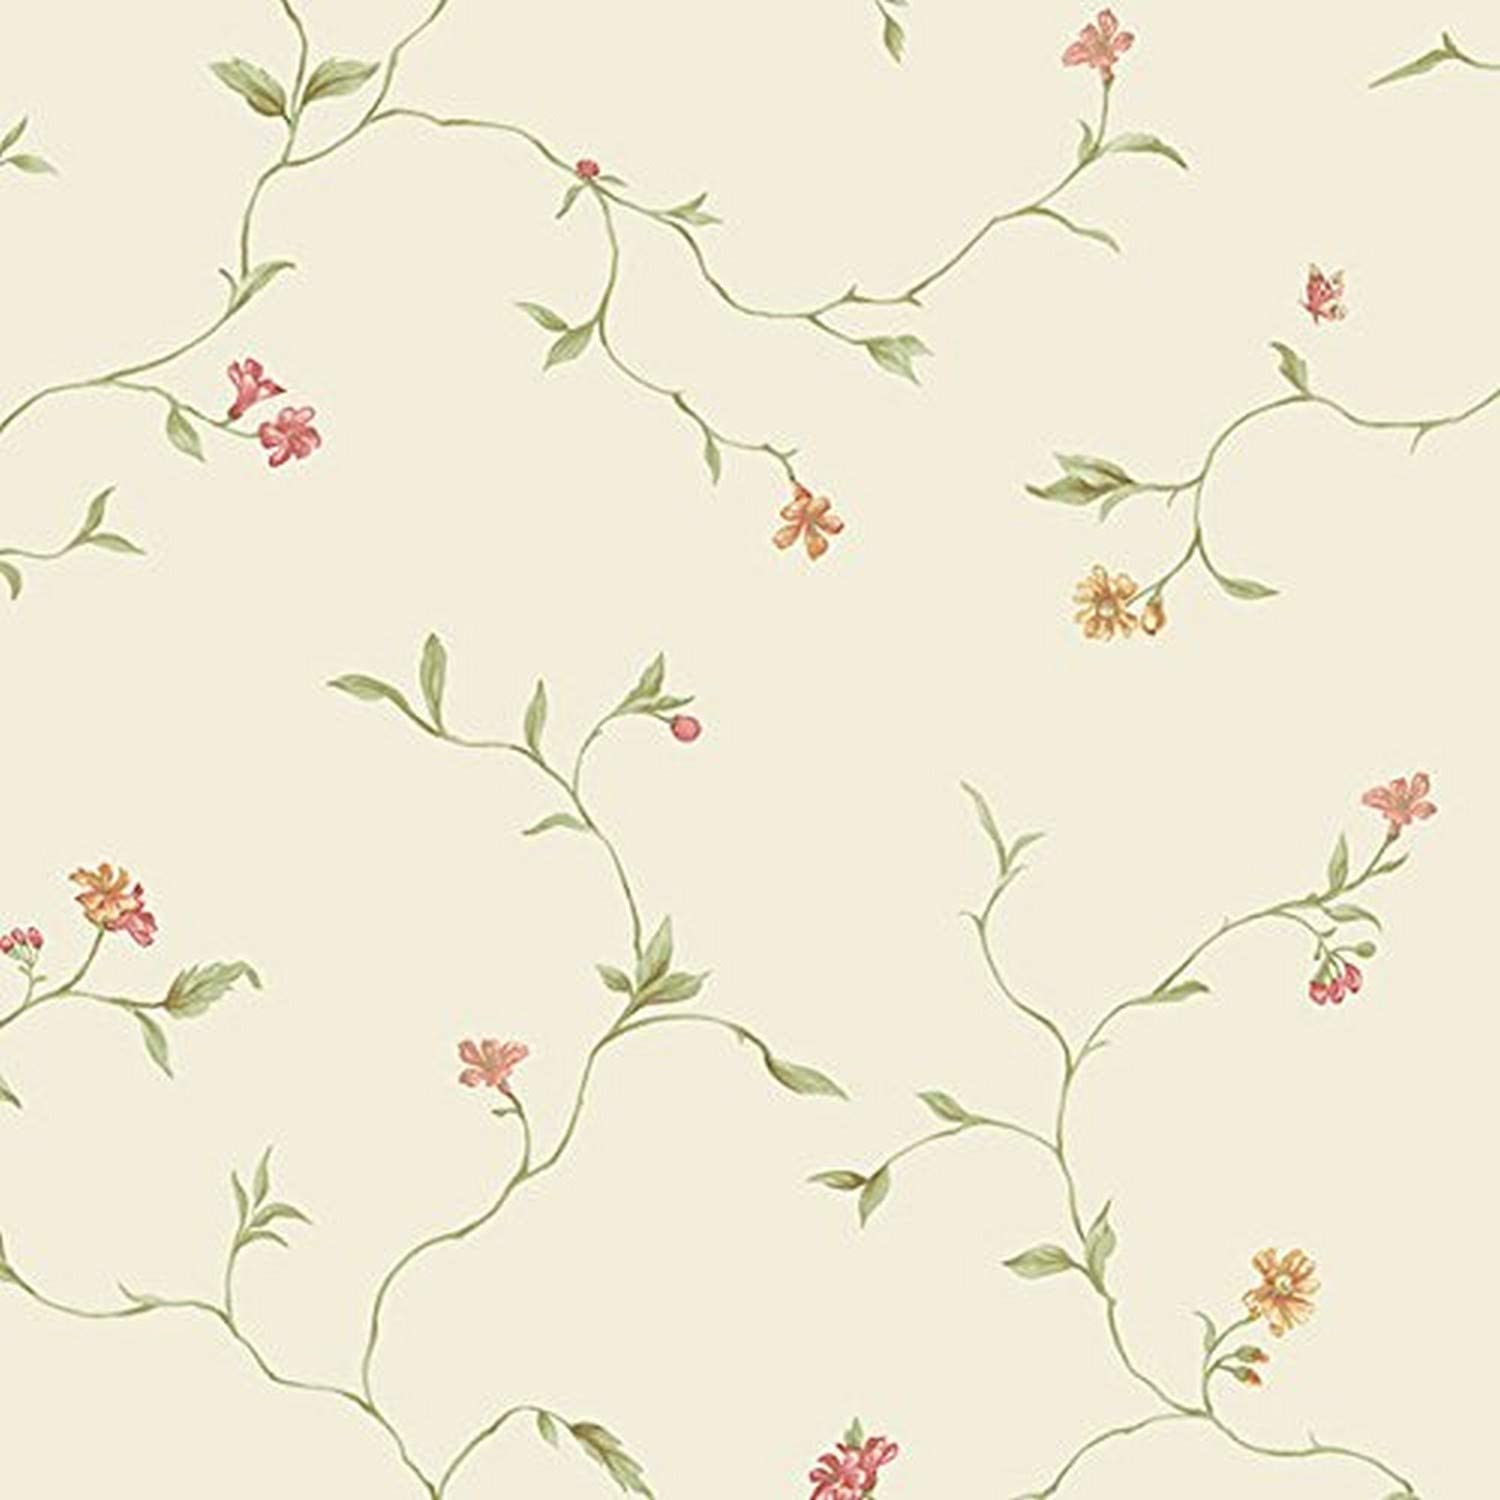 Norwall Nwke29902 Chesapeake Floral Trail Textured Wallpaper Red